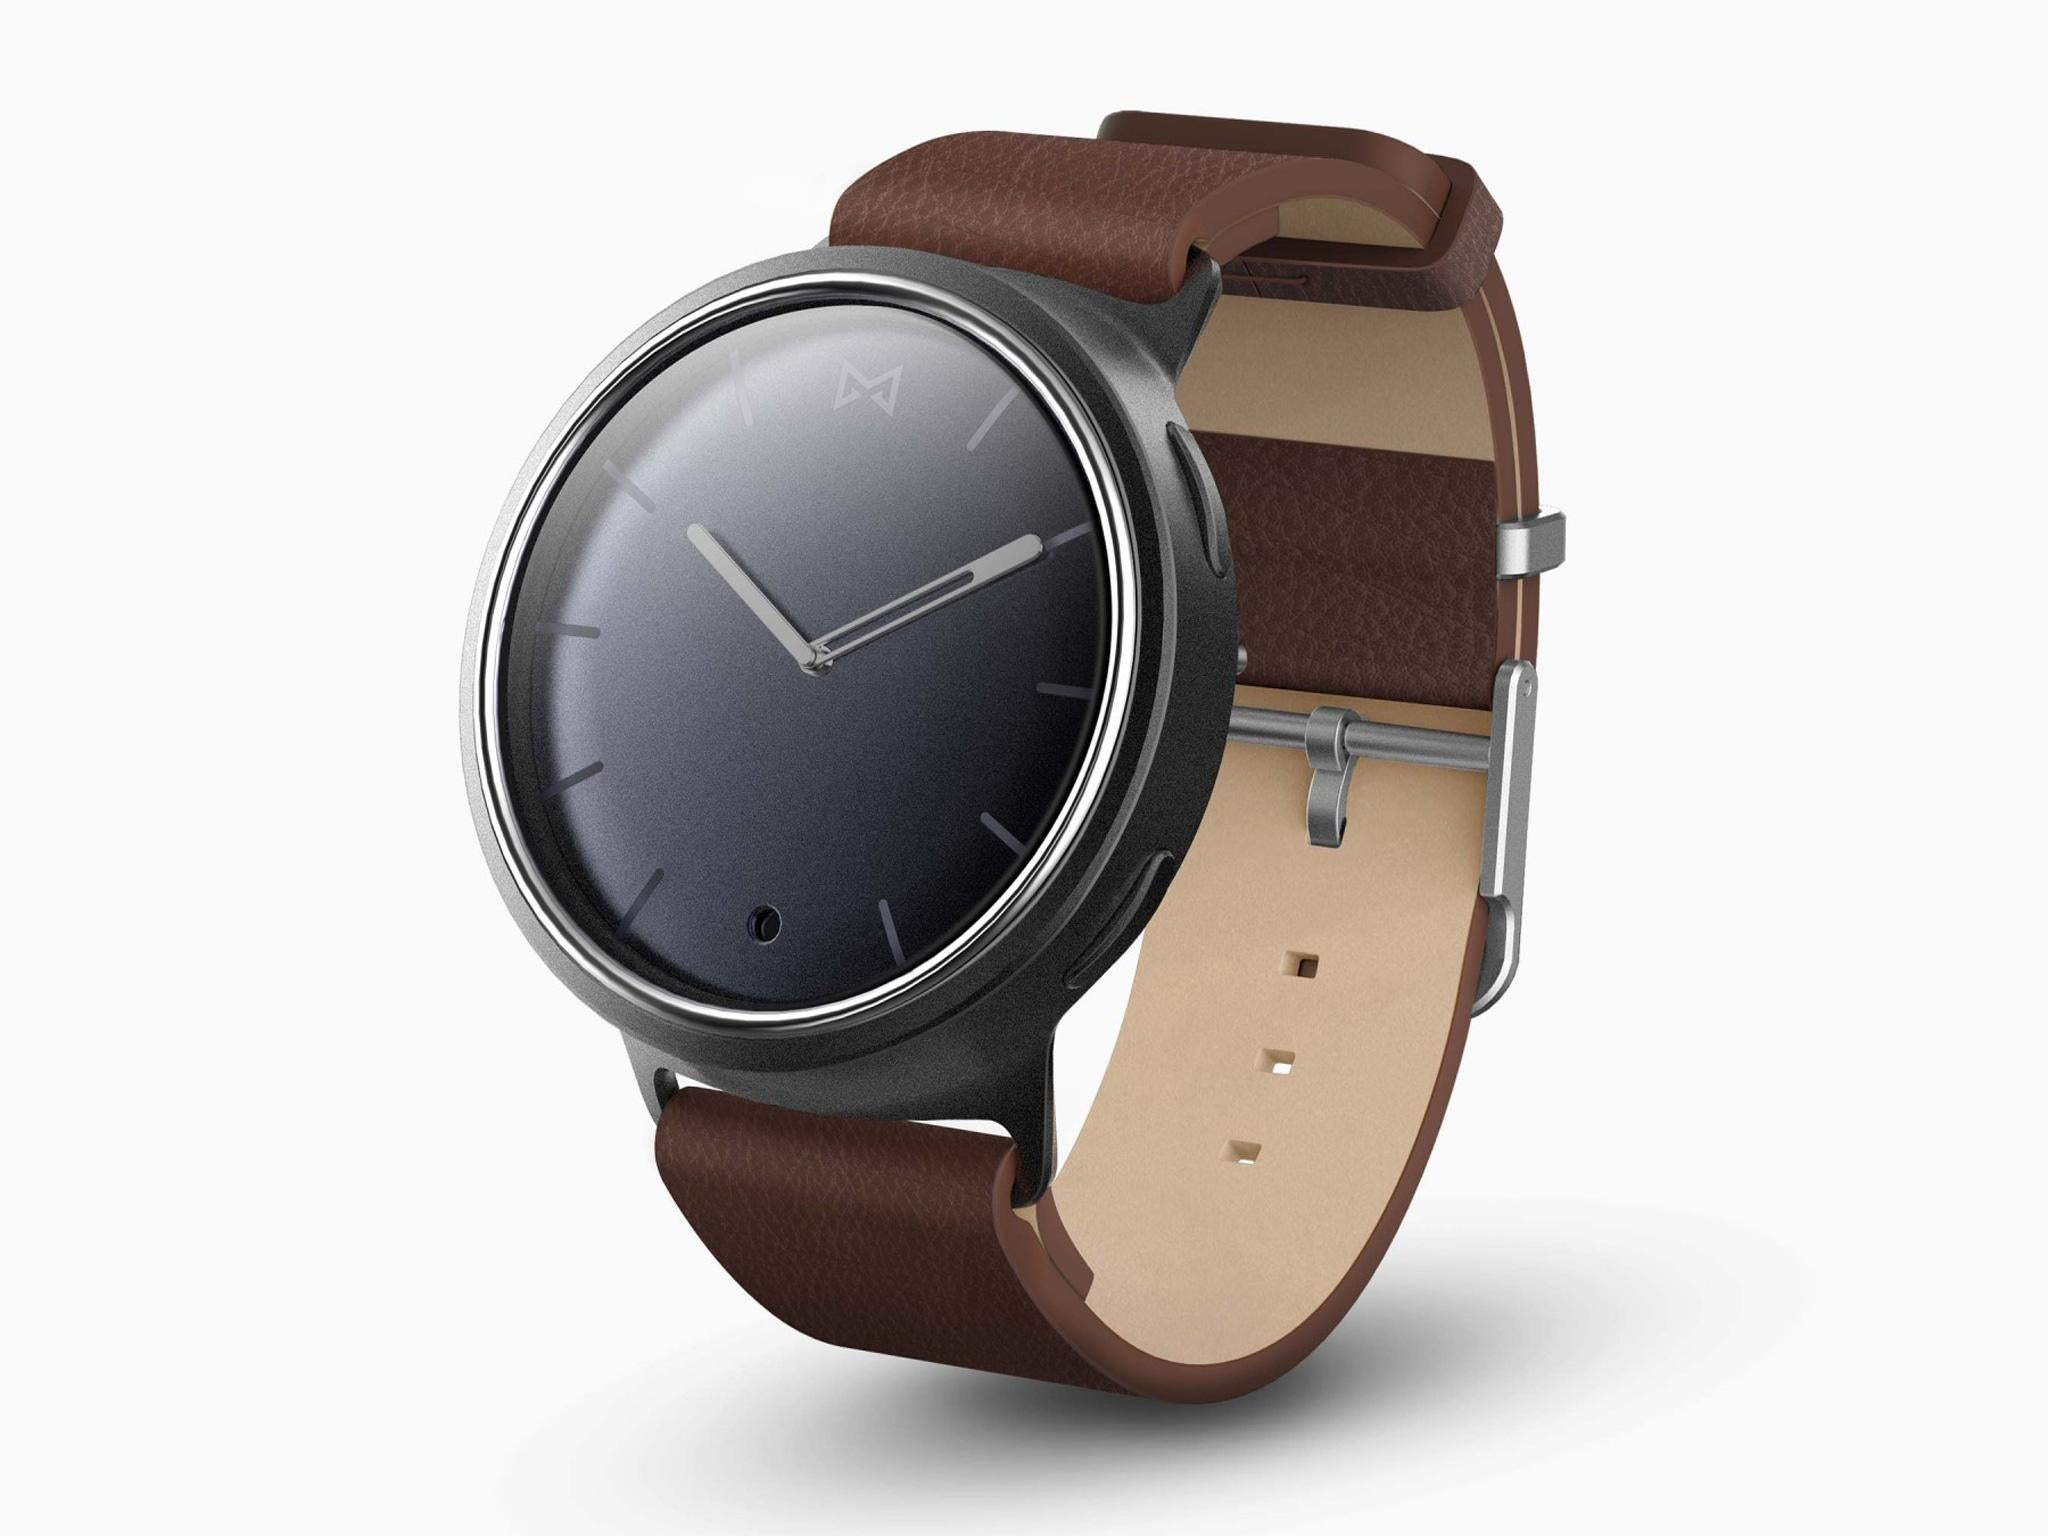 10 best hybrid smartwatches | The Independent | The Independent